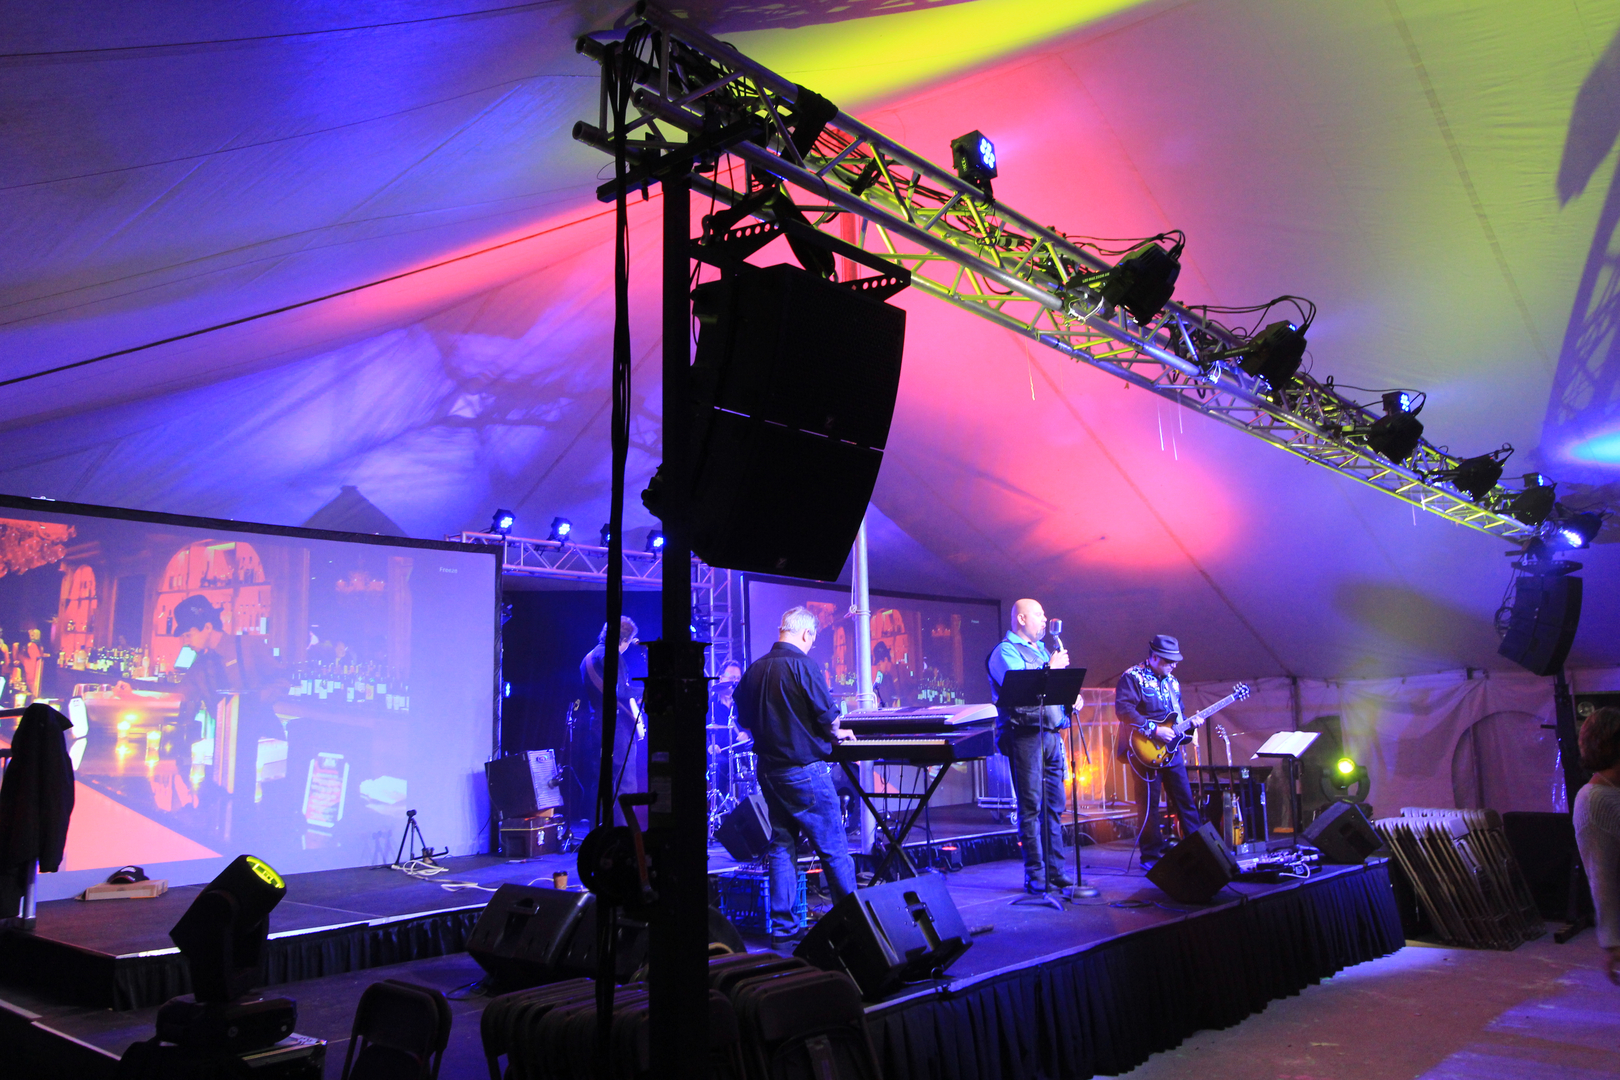 audio visual production and rentals sound events london on